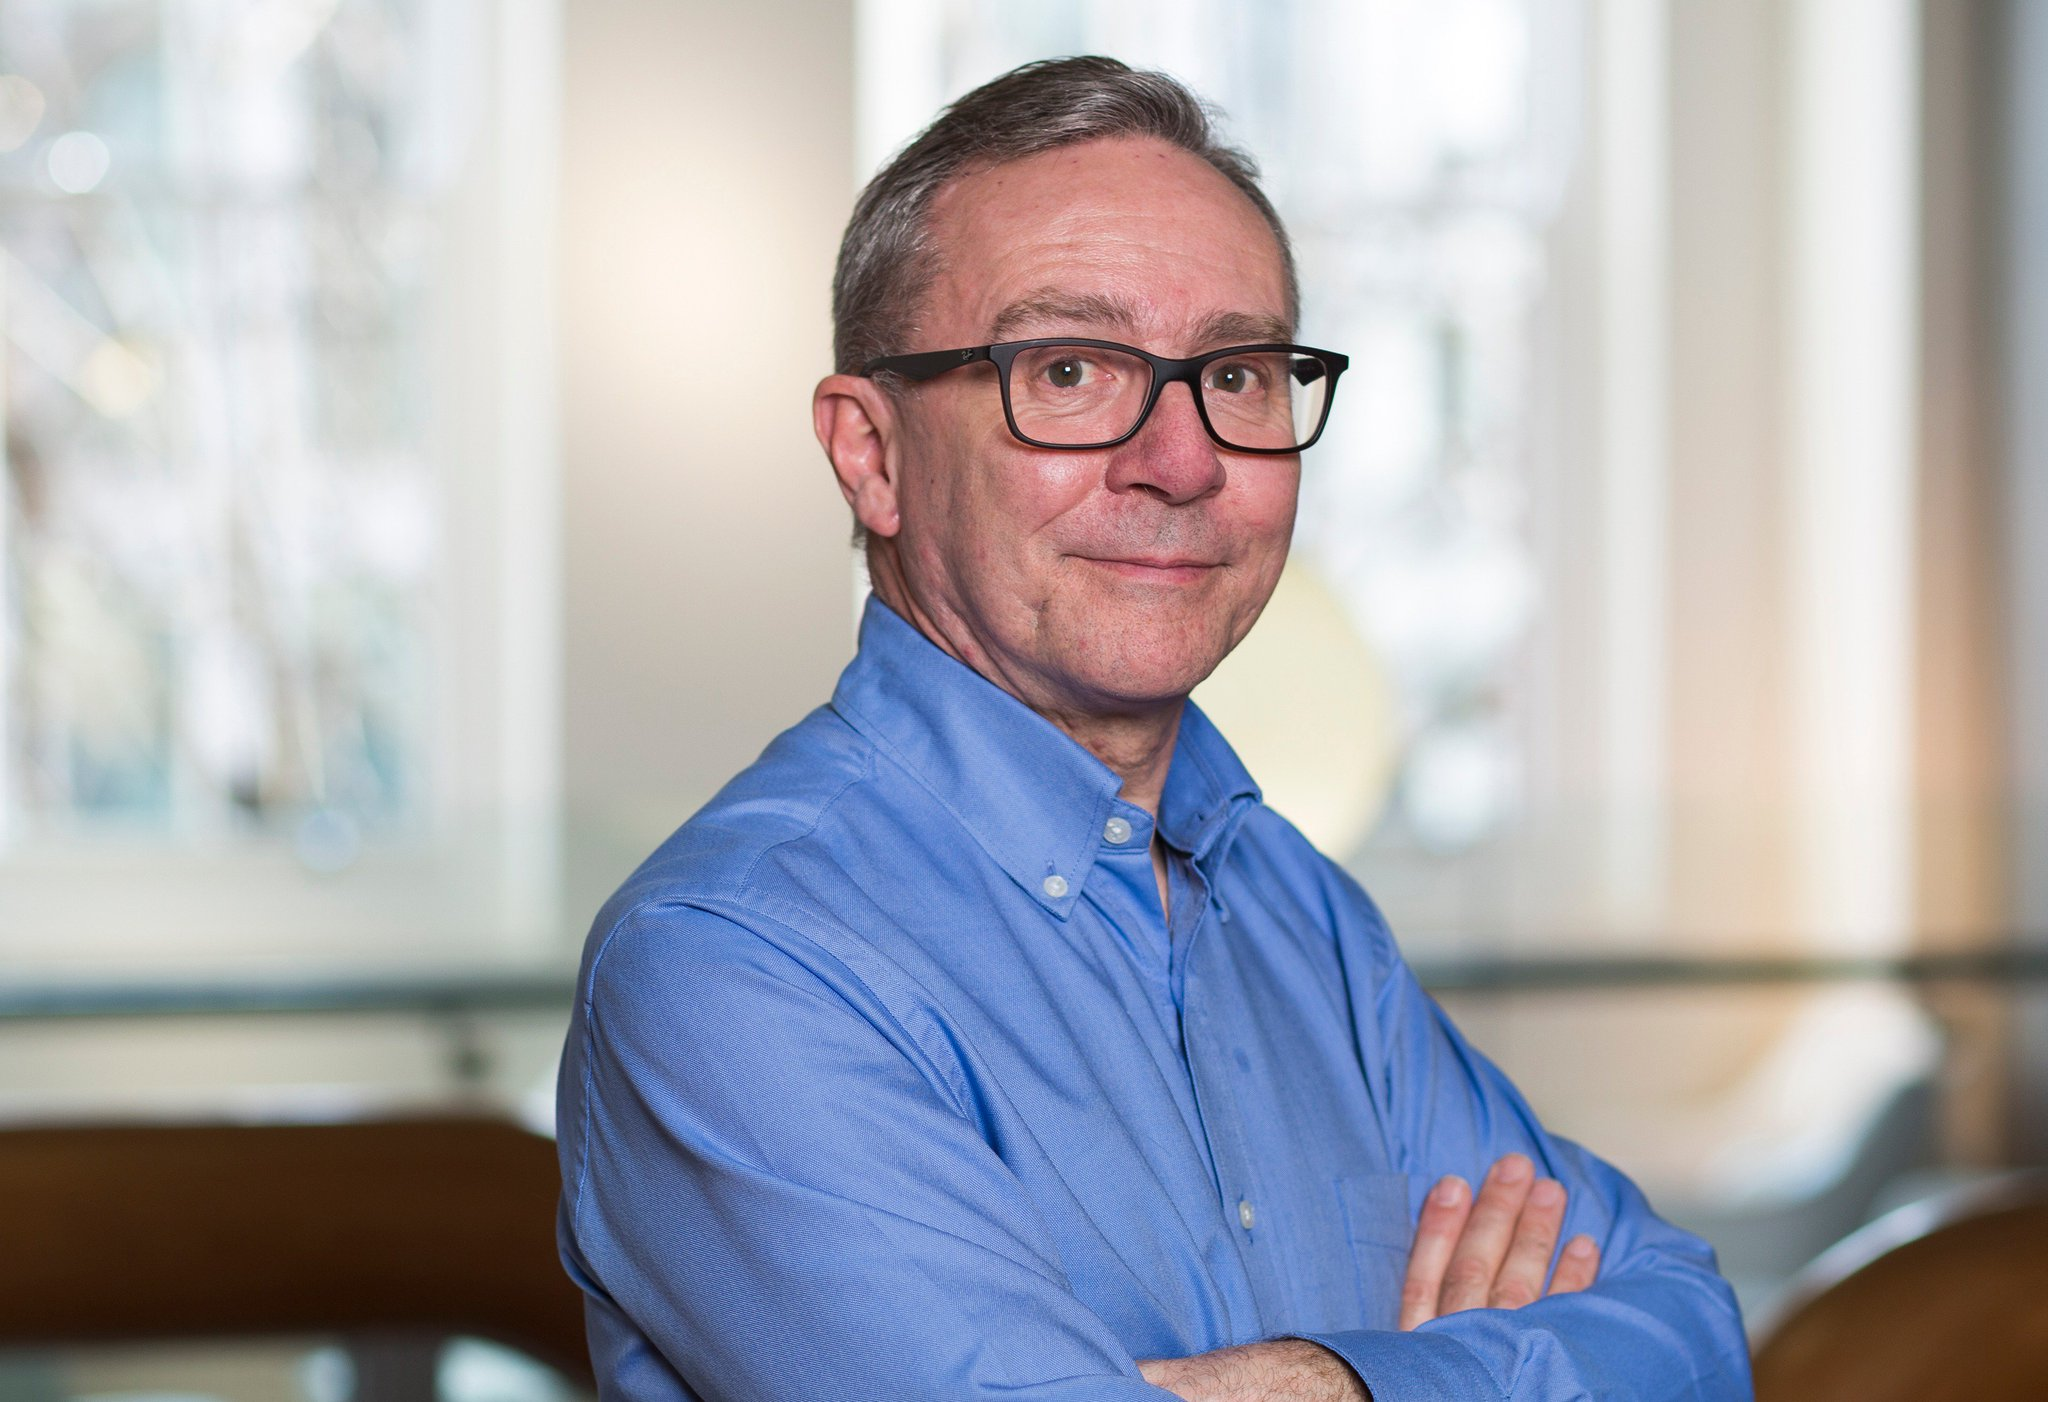 Les Binet - communication summit 2019